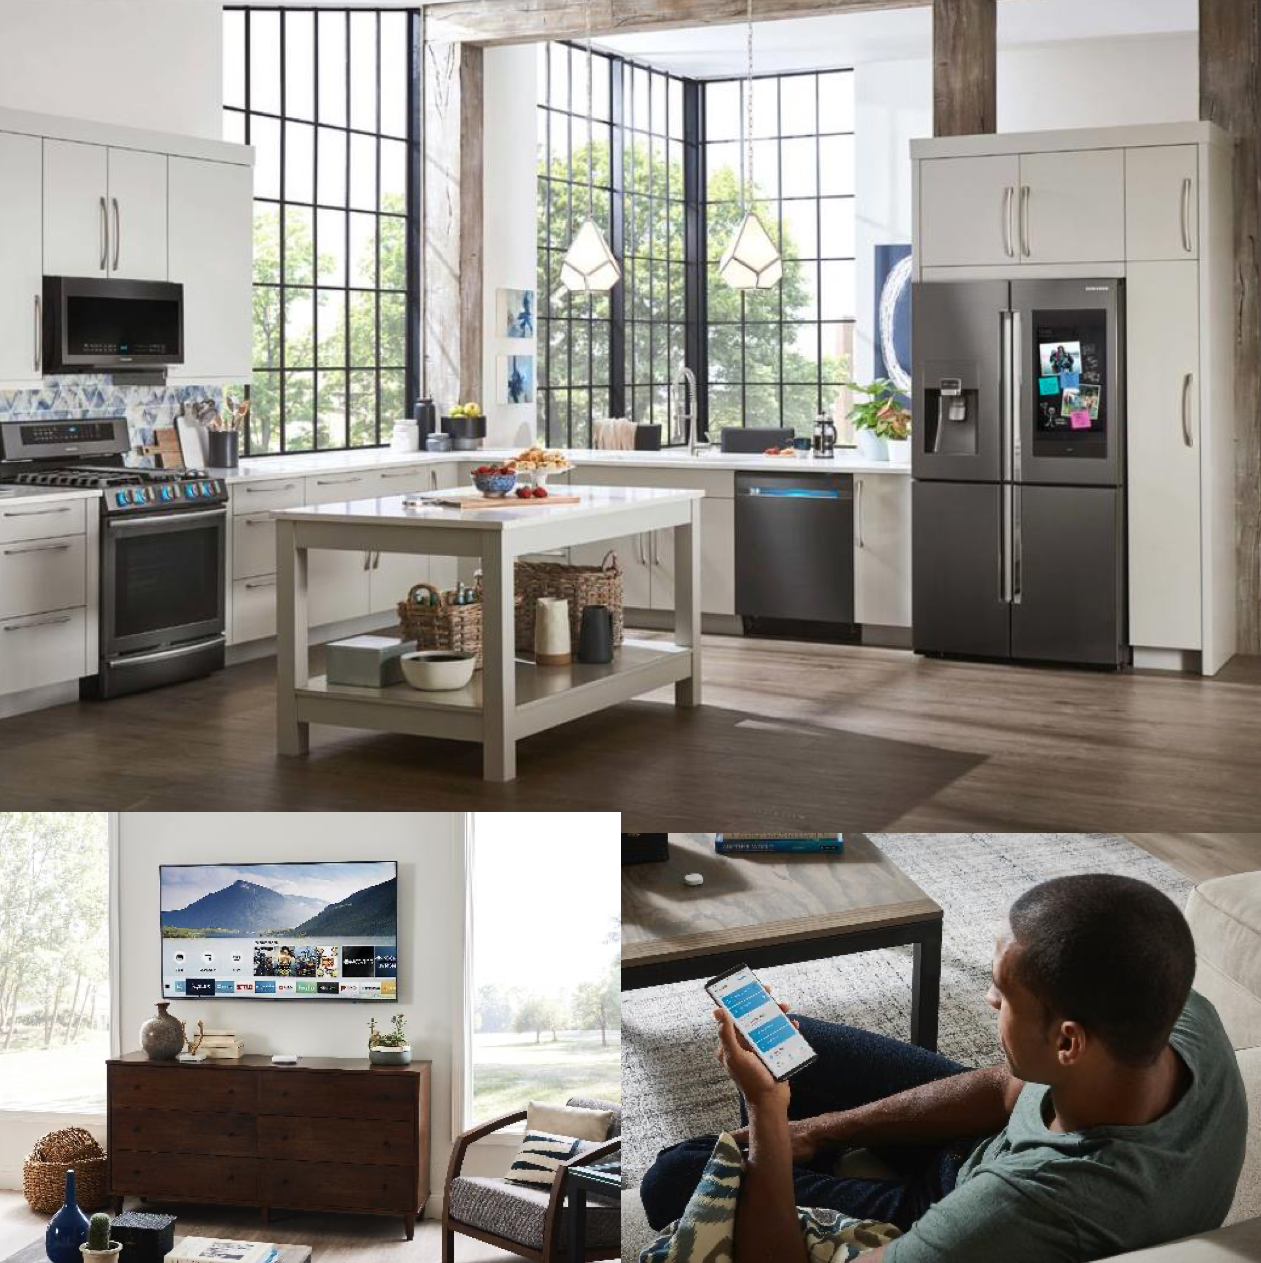 Manufacturers like Samsung, showcased suites of products, touting their connectivity and personalization.